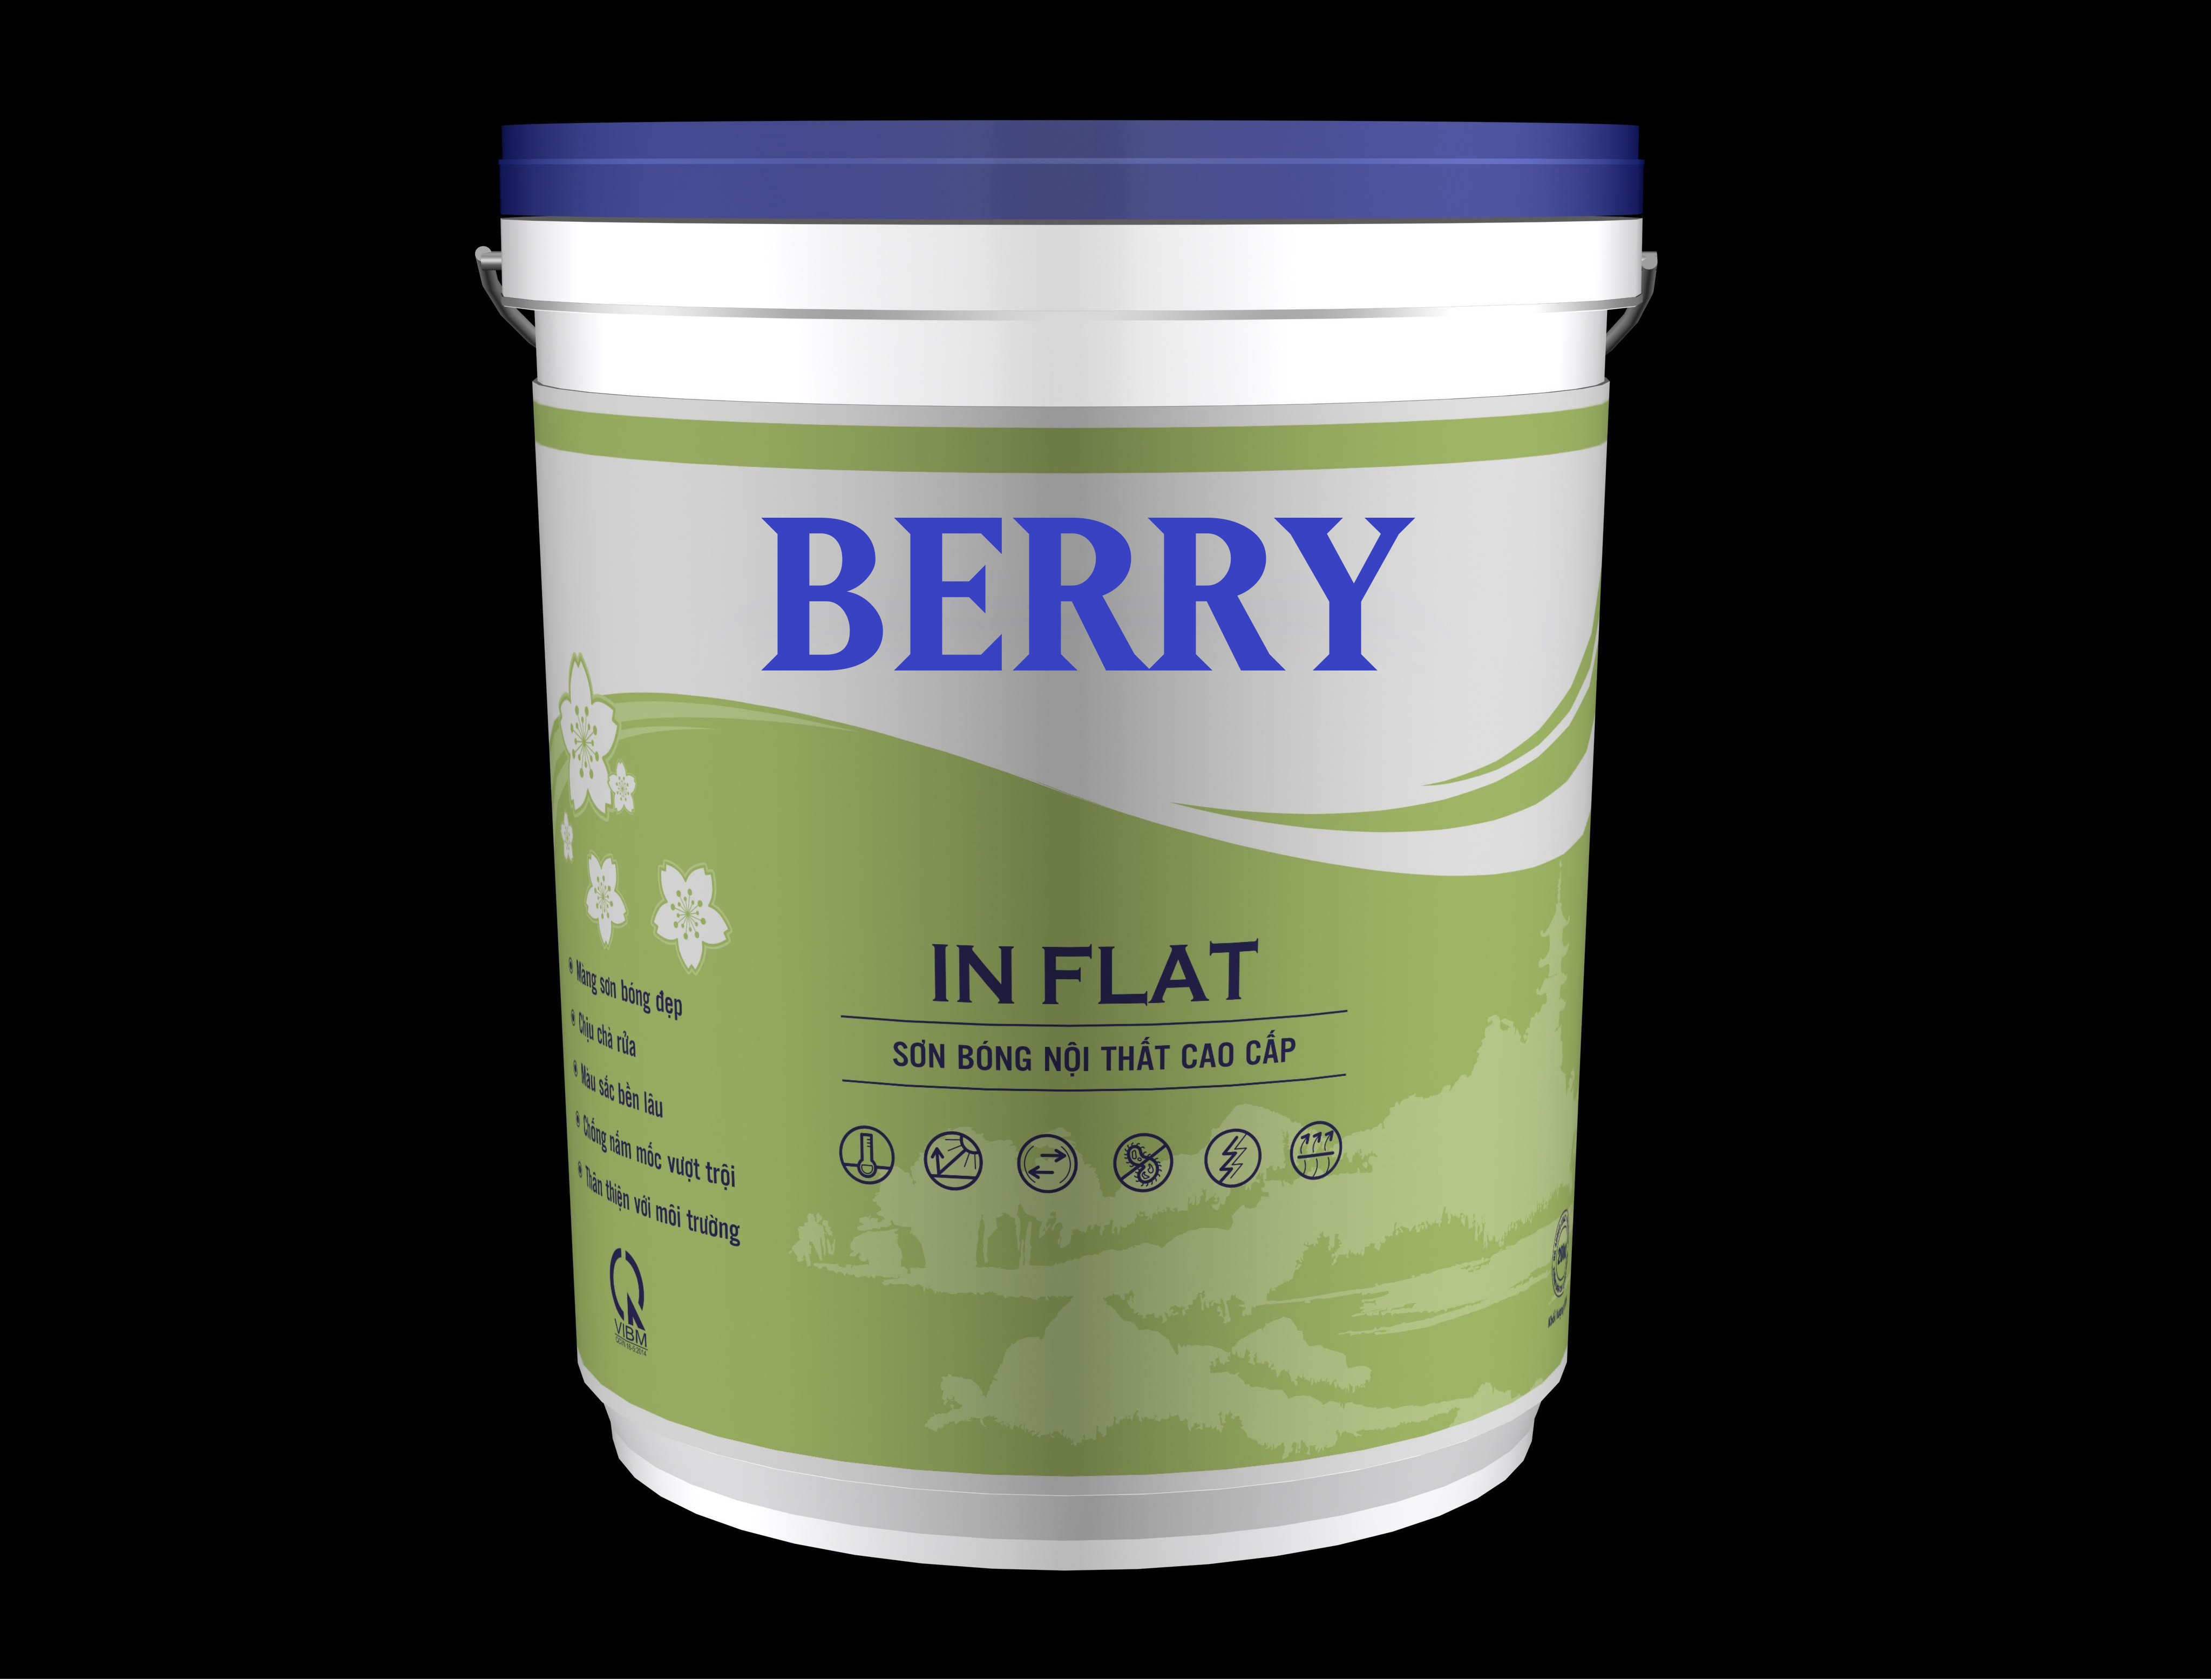 Sơn Berry In Flat